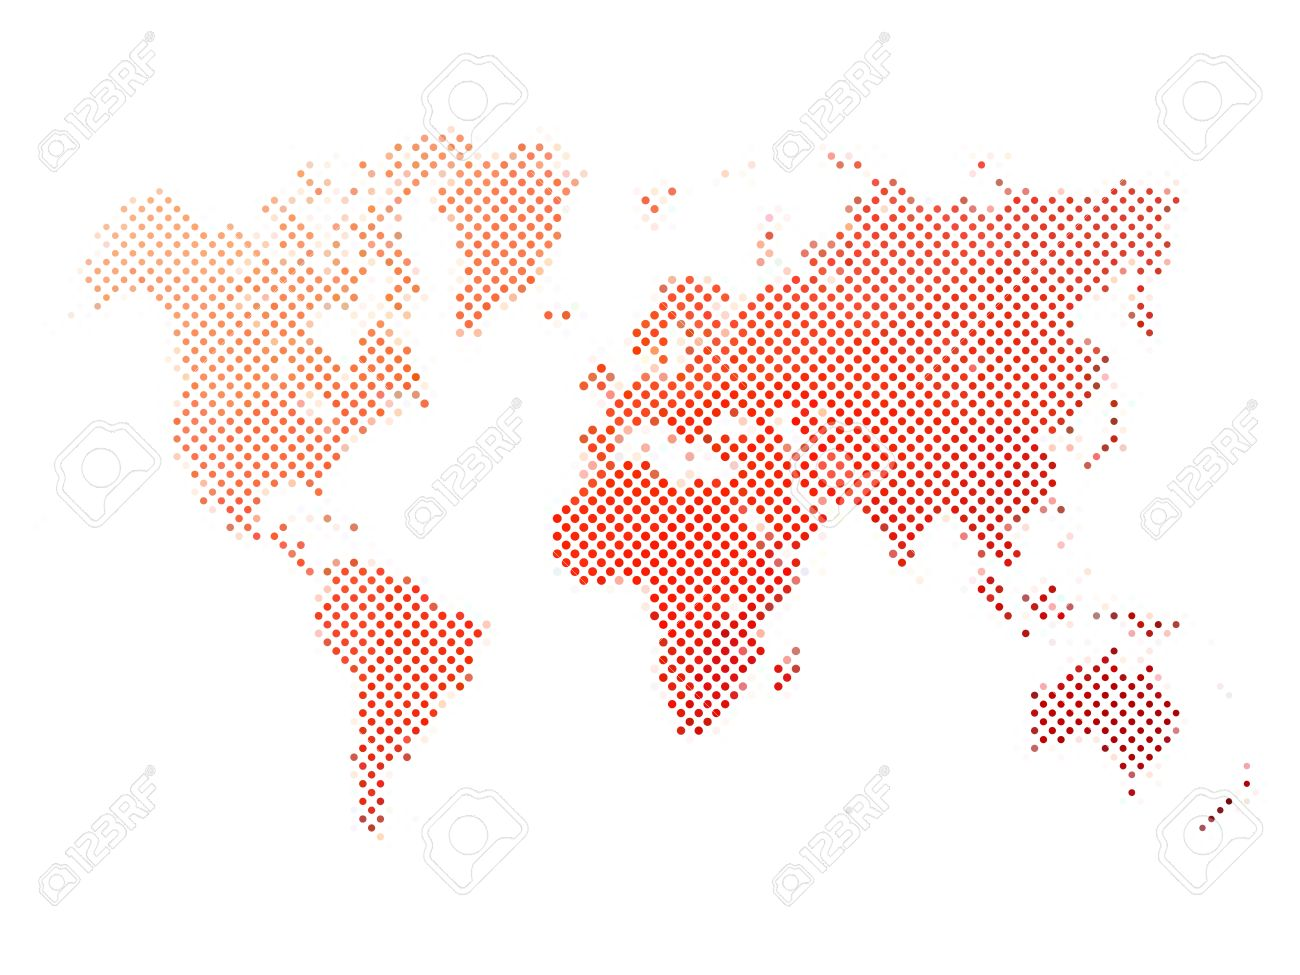 World map of red dots on white background in corss arrangement world map of red dots on white background in corss arrangement map of world silhouette gumiabroncs Image collections